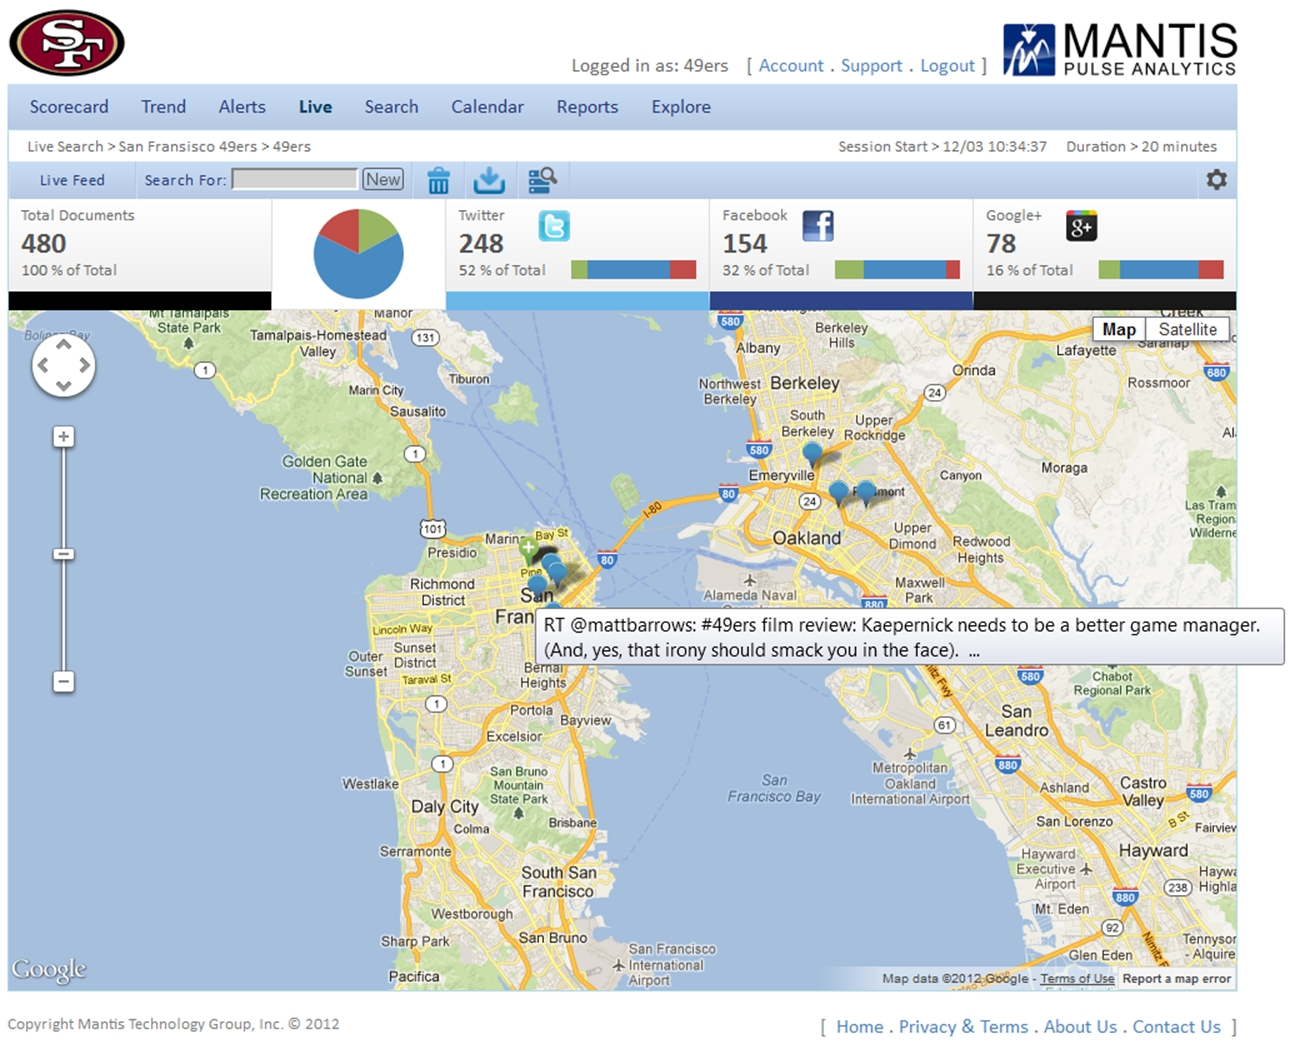 Pulse Analytics Map View while monitoring mentions of the San Francisco 49ers